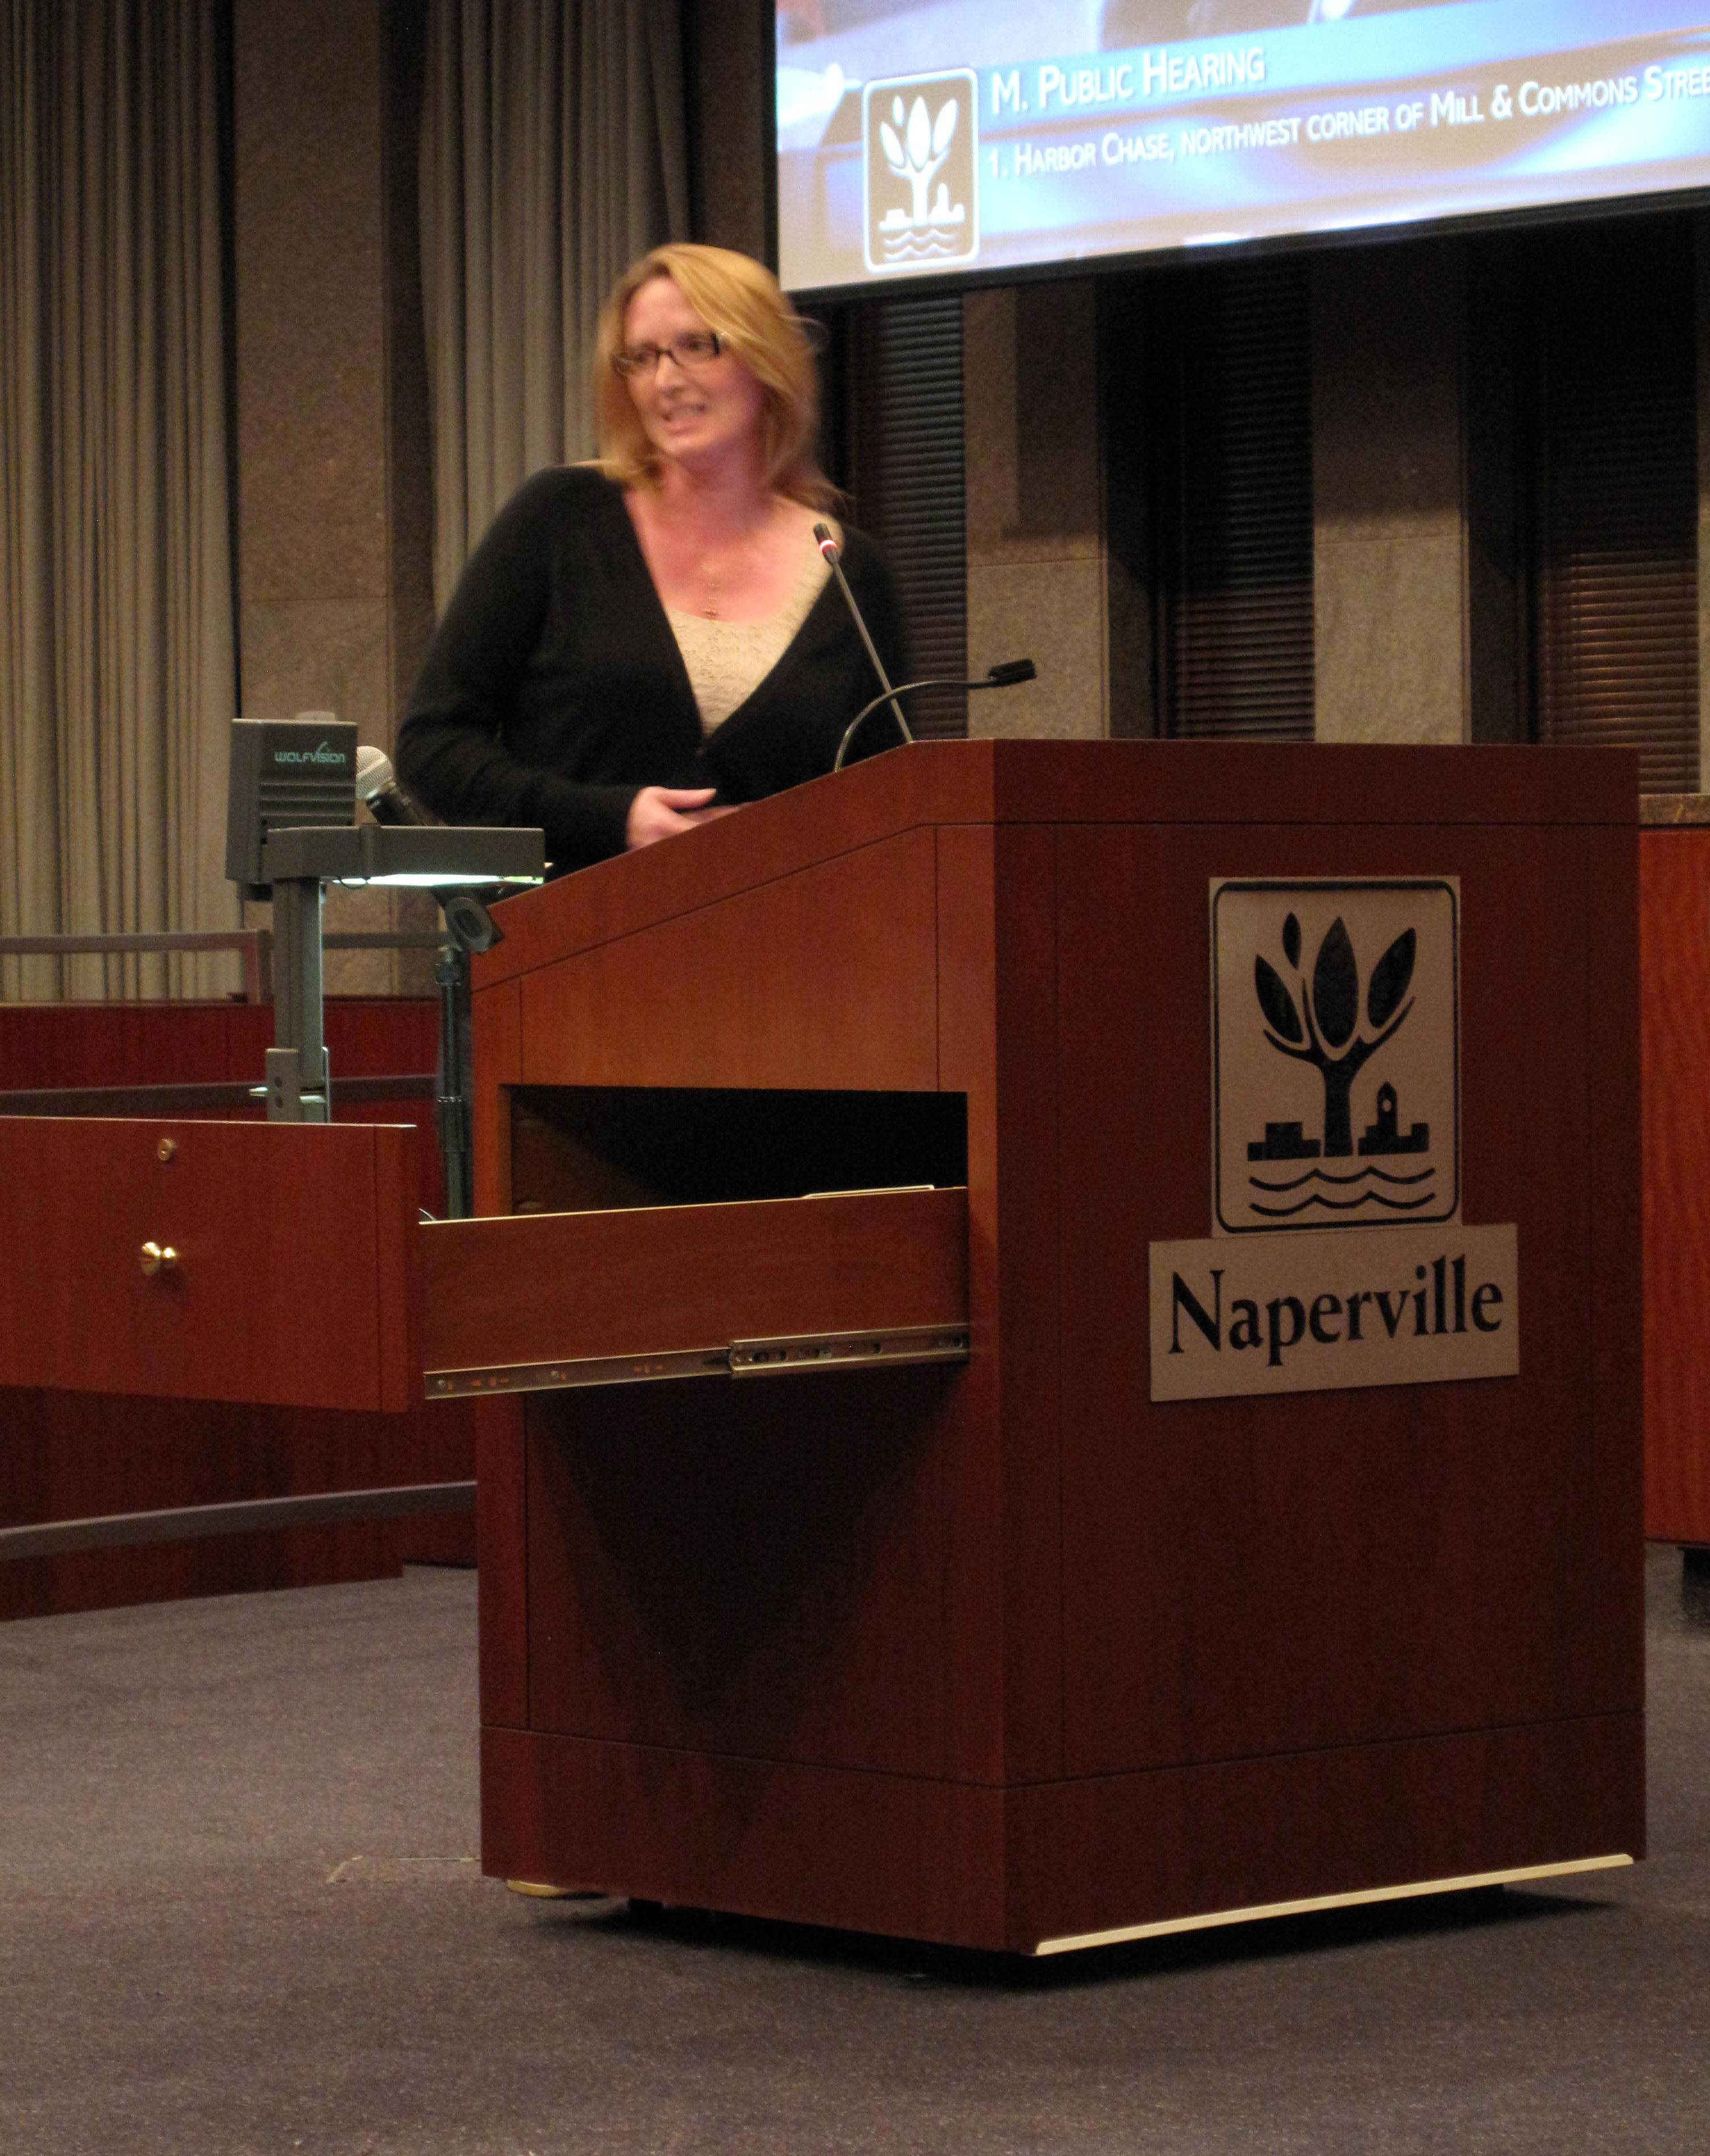 Fran Bixler, president of the homeowners' association for the Century Farms subdivision, discusses concerns about traffic near an assisted living center the Naperville City Council approved Tuesday to be built east of her neighborhood.